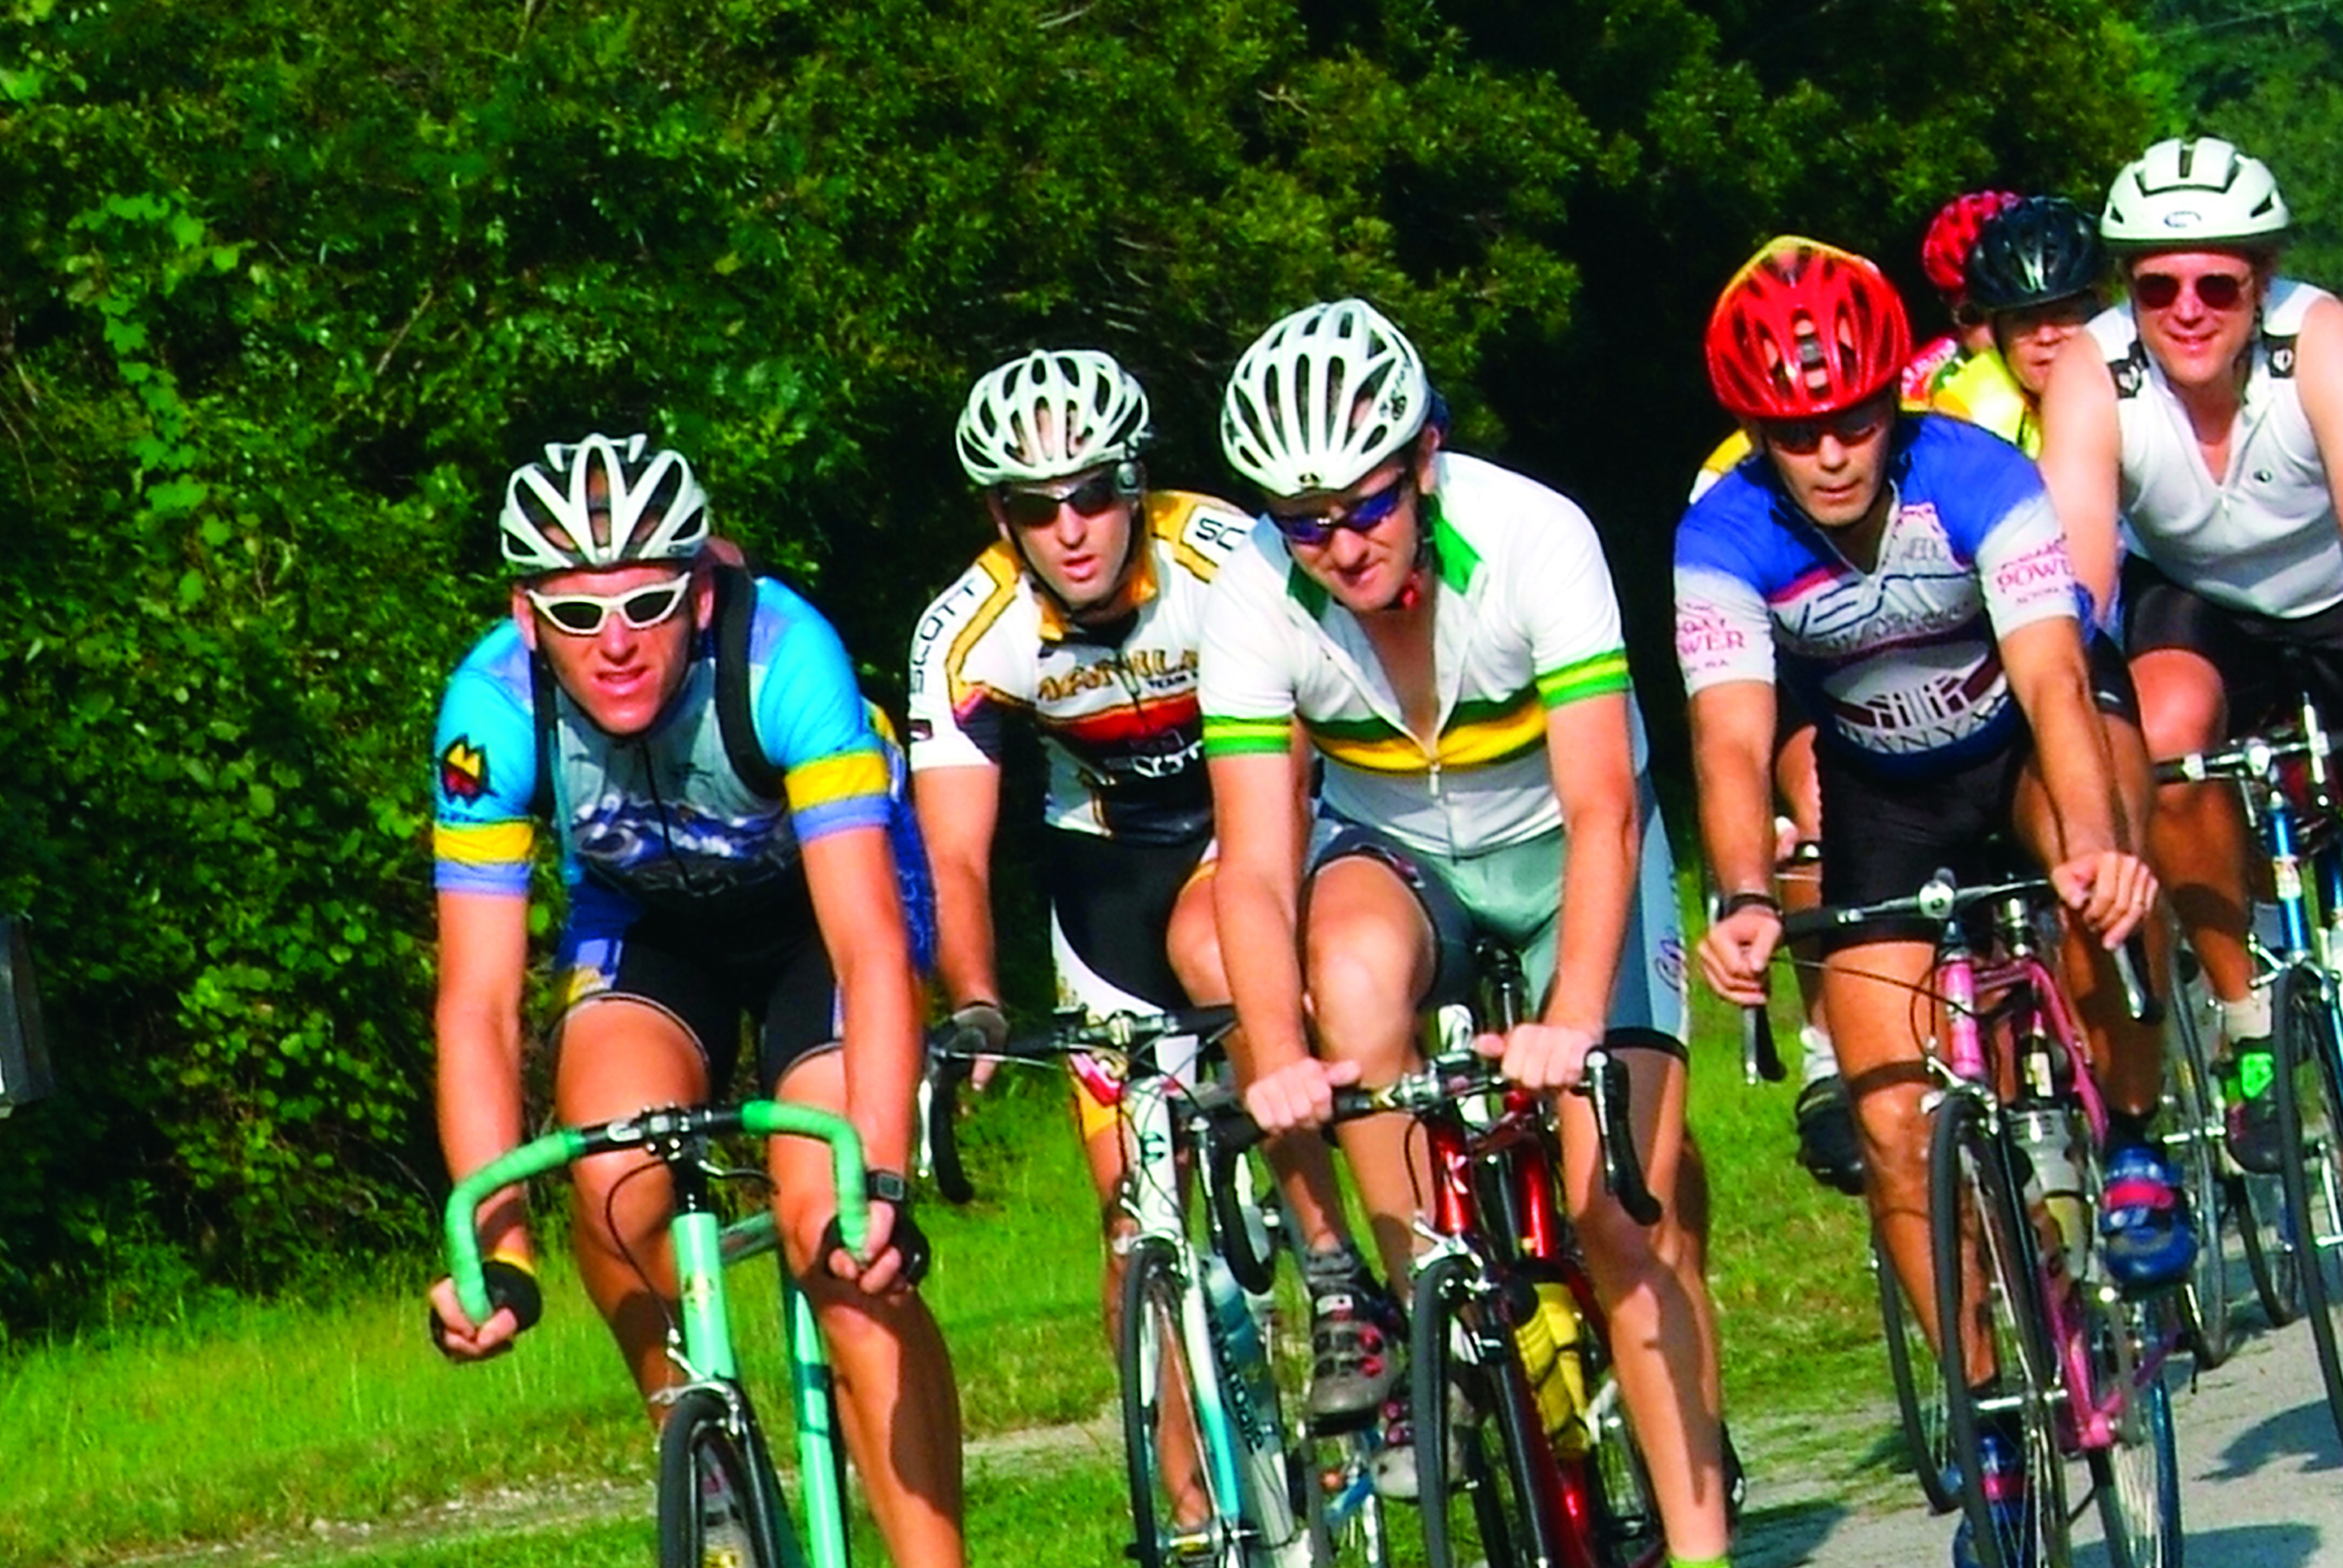 Bikers cycling in Gainesville Florida